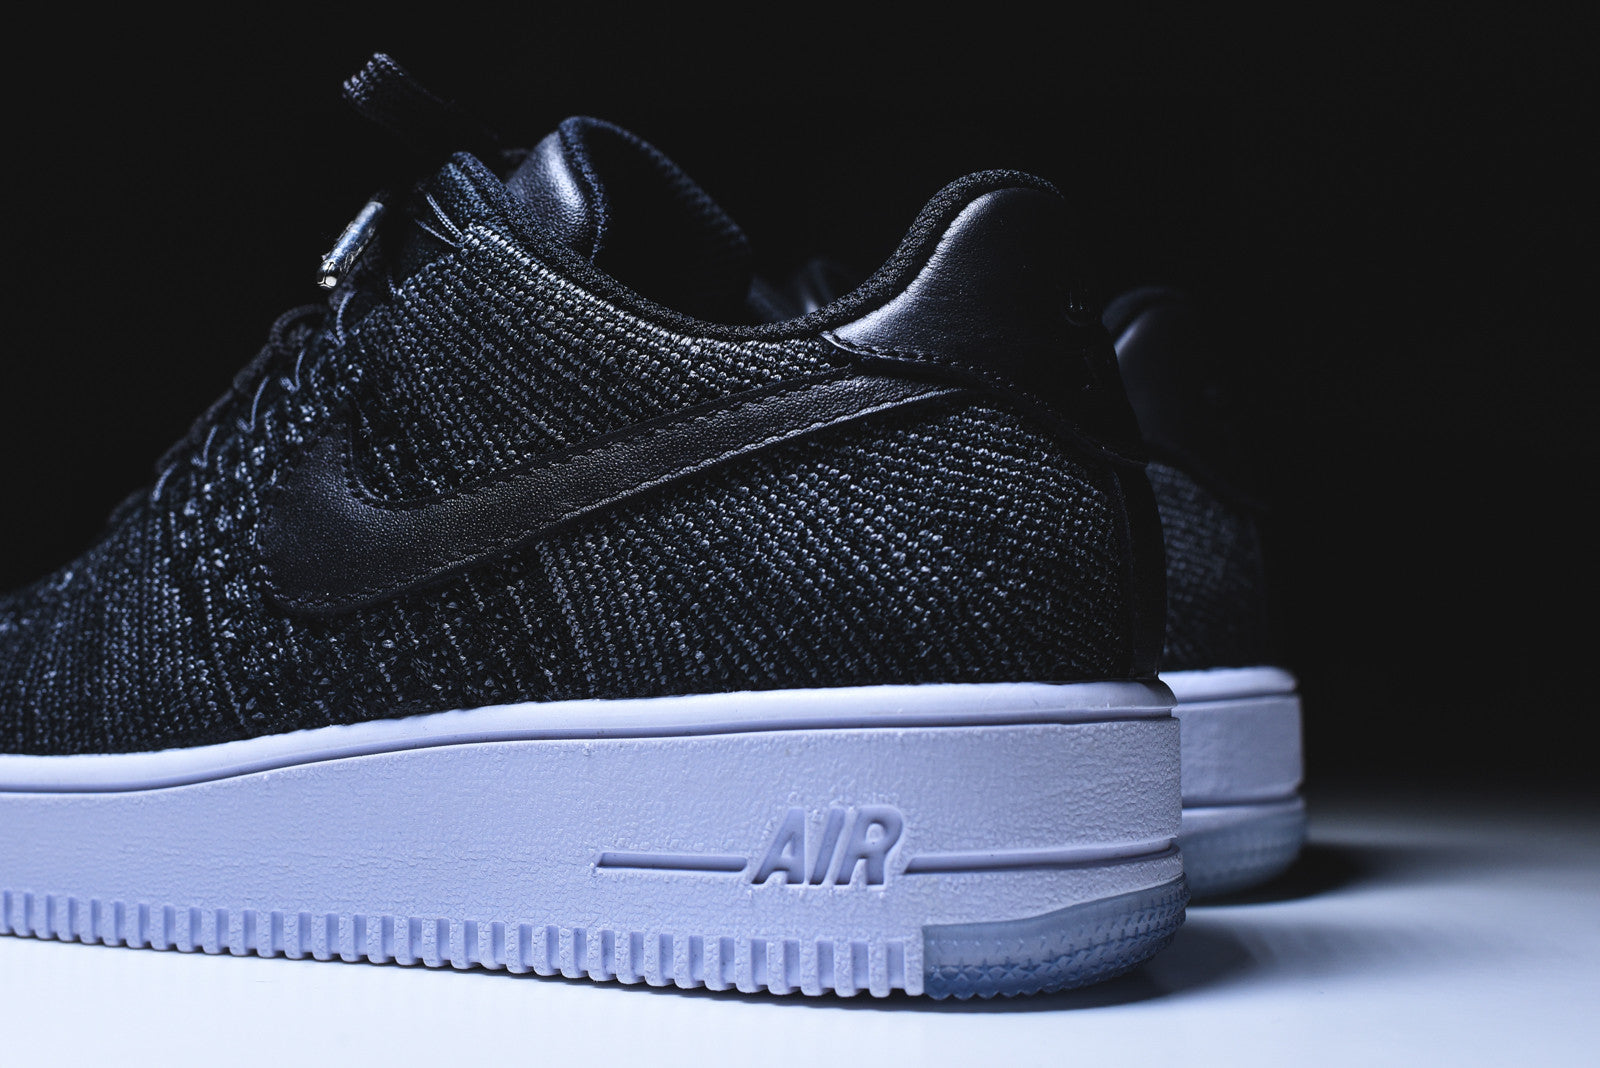 Nike WMNS Air Force 1 Flyknit Low - Black